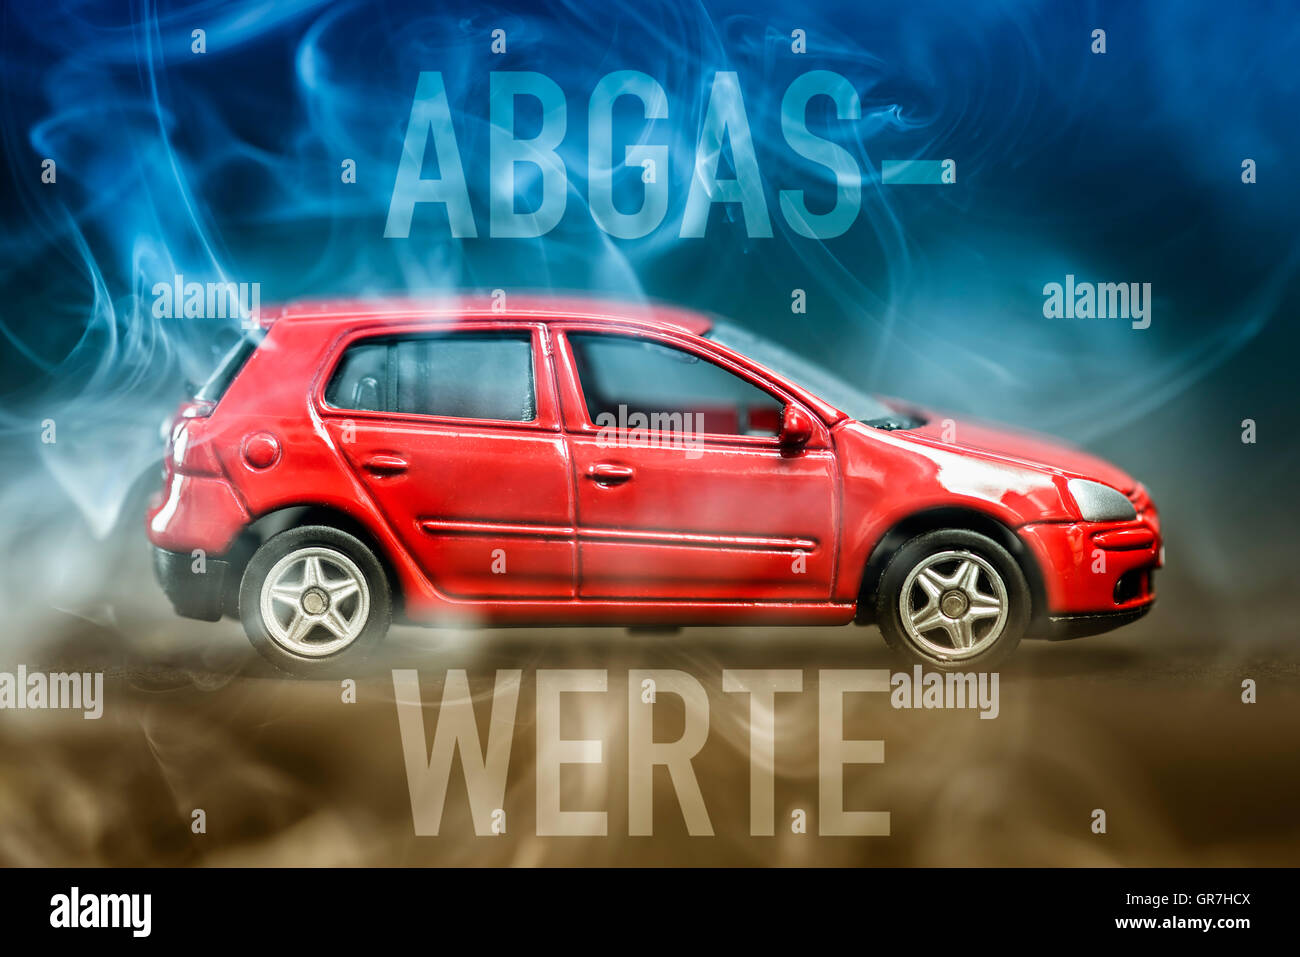 Miniature Car And Exhaust Gases - Stock Image